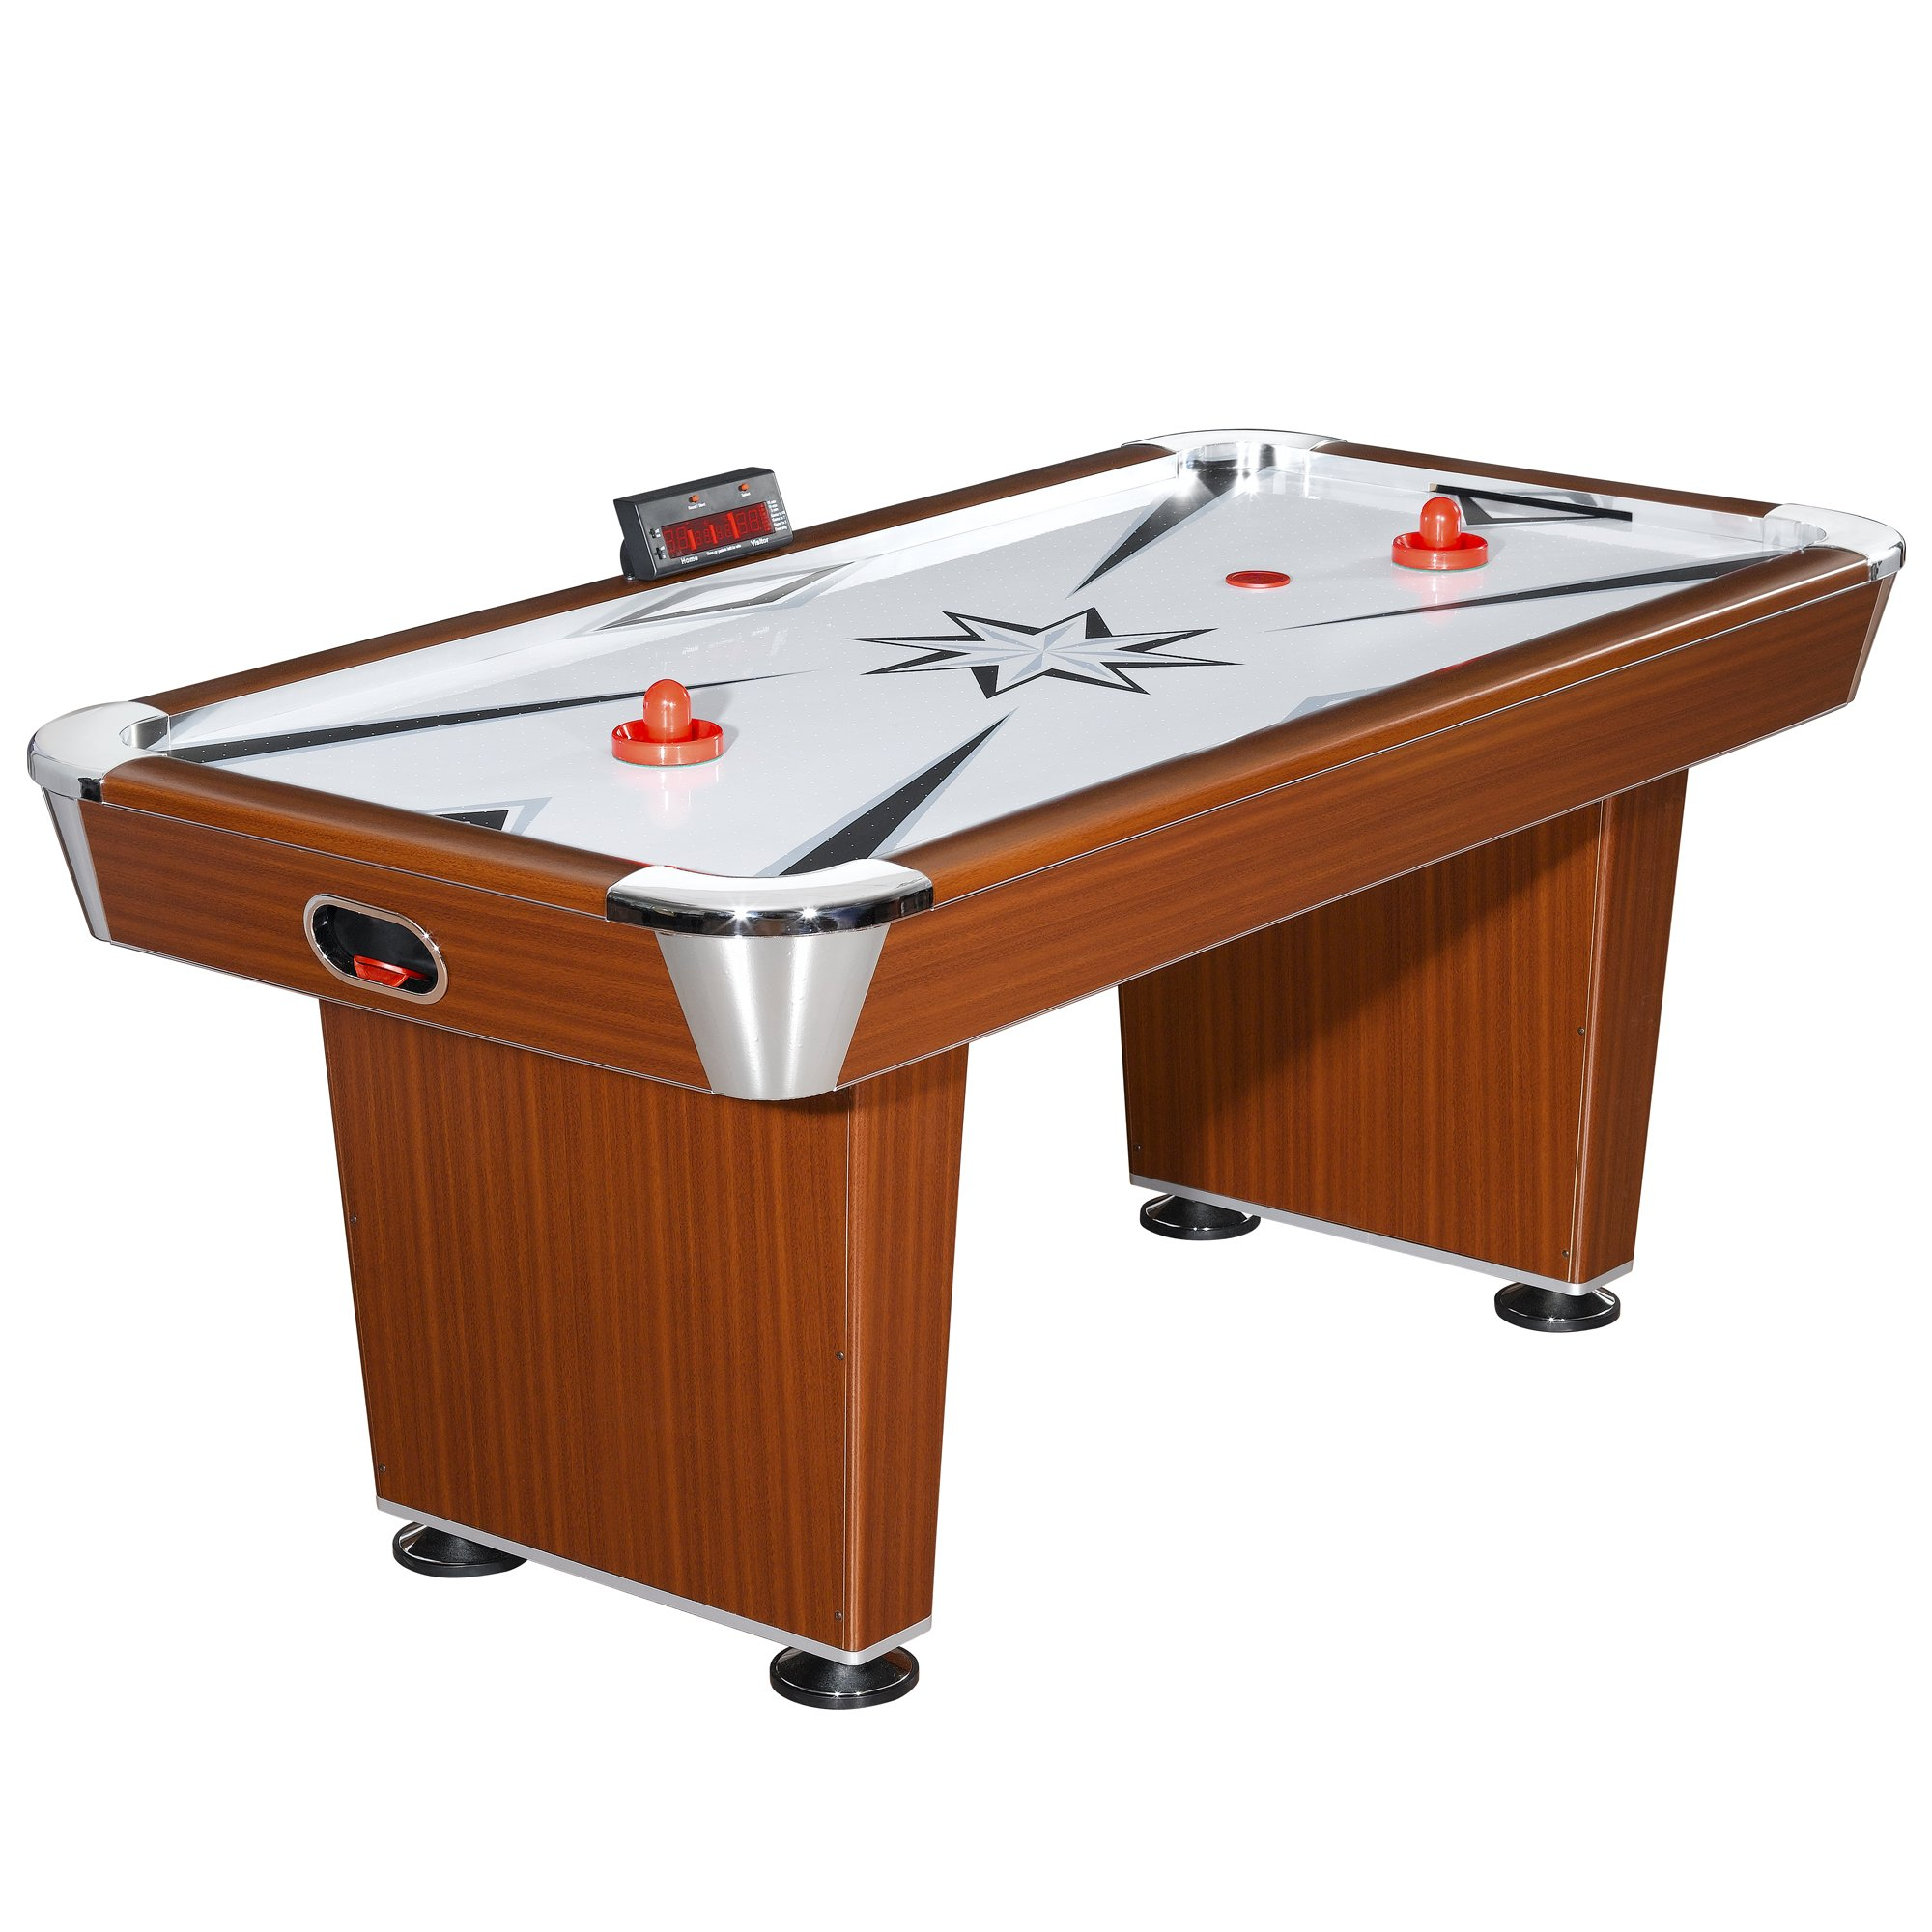 Hathaway Midtown 6' Air Hockey Family Game Table with Electronic Scoring, High-Powered Blower, Cherry Wood-Tone, Strikers and Pucks by Hathaway